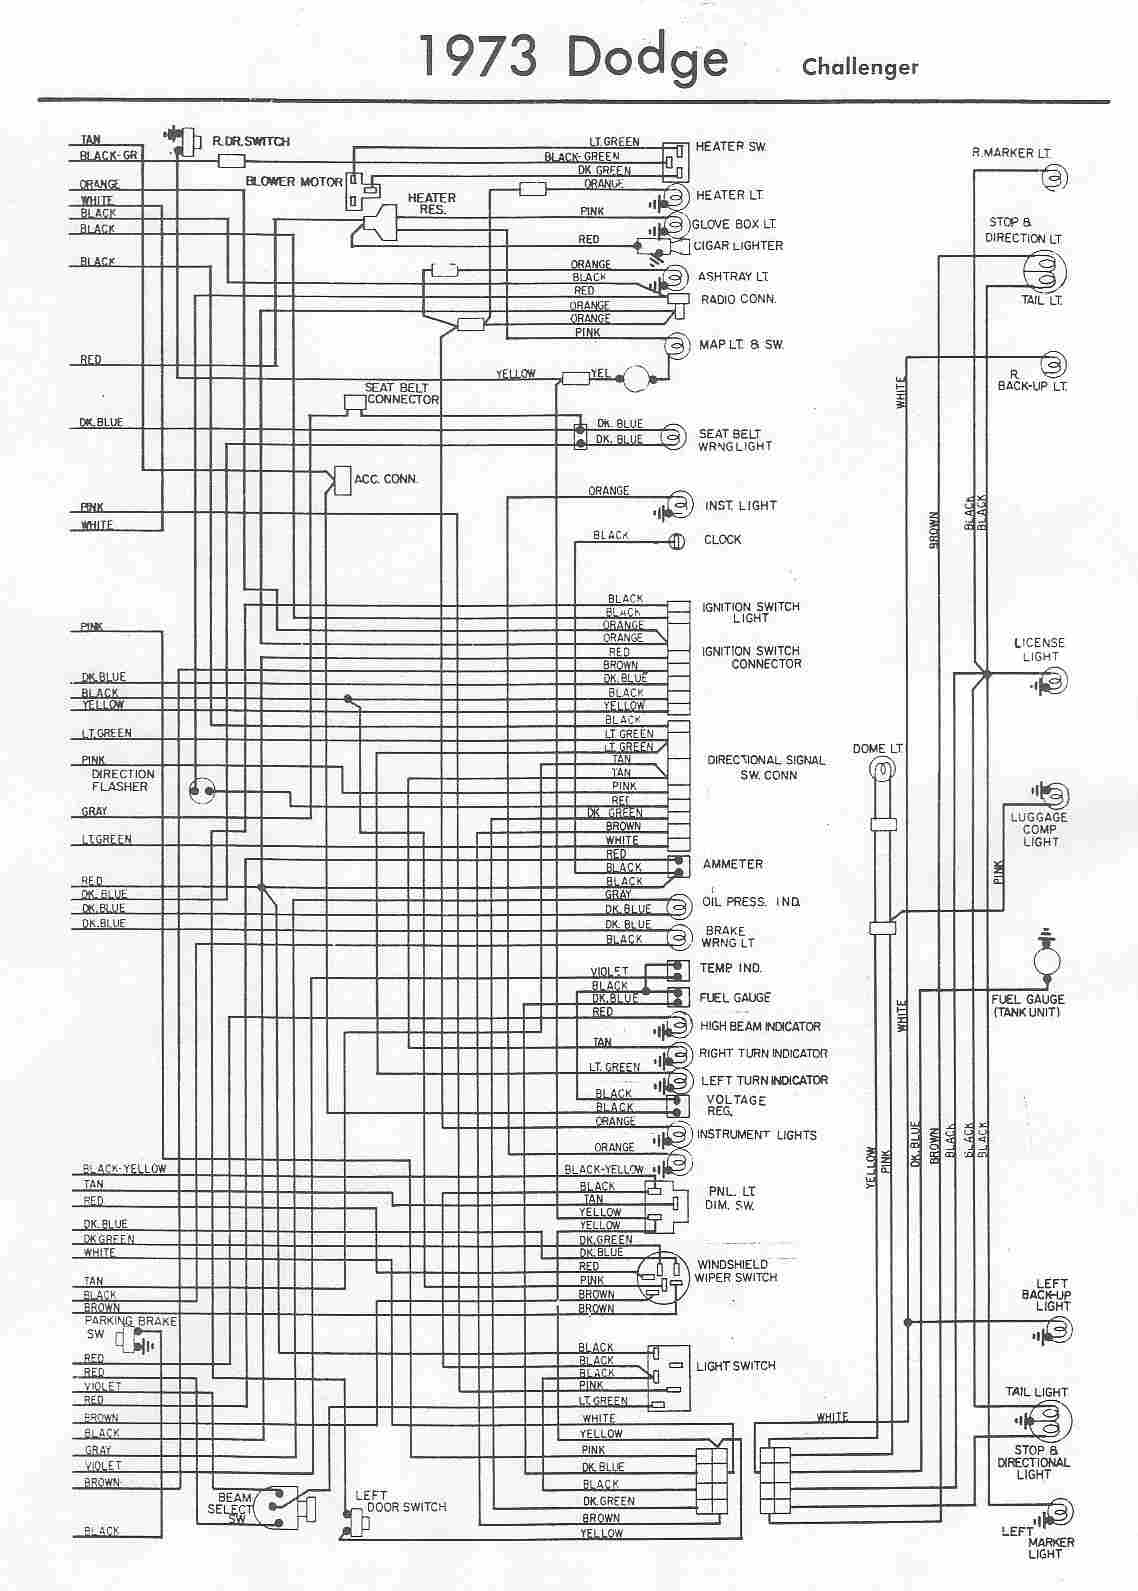 electrical-wiring-diagram-of-1973-dodge-challenger